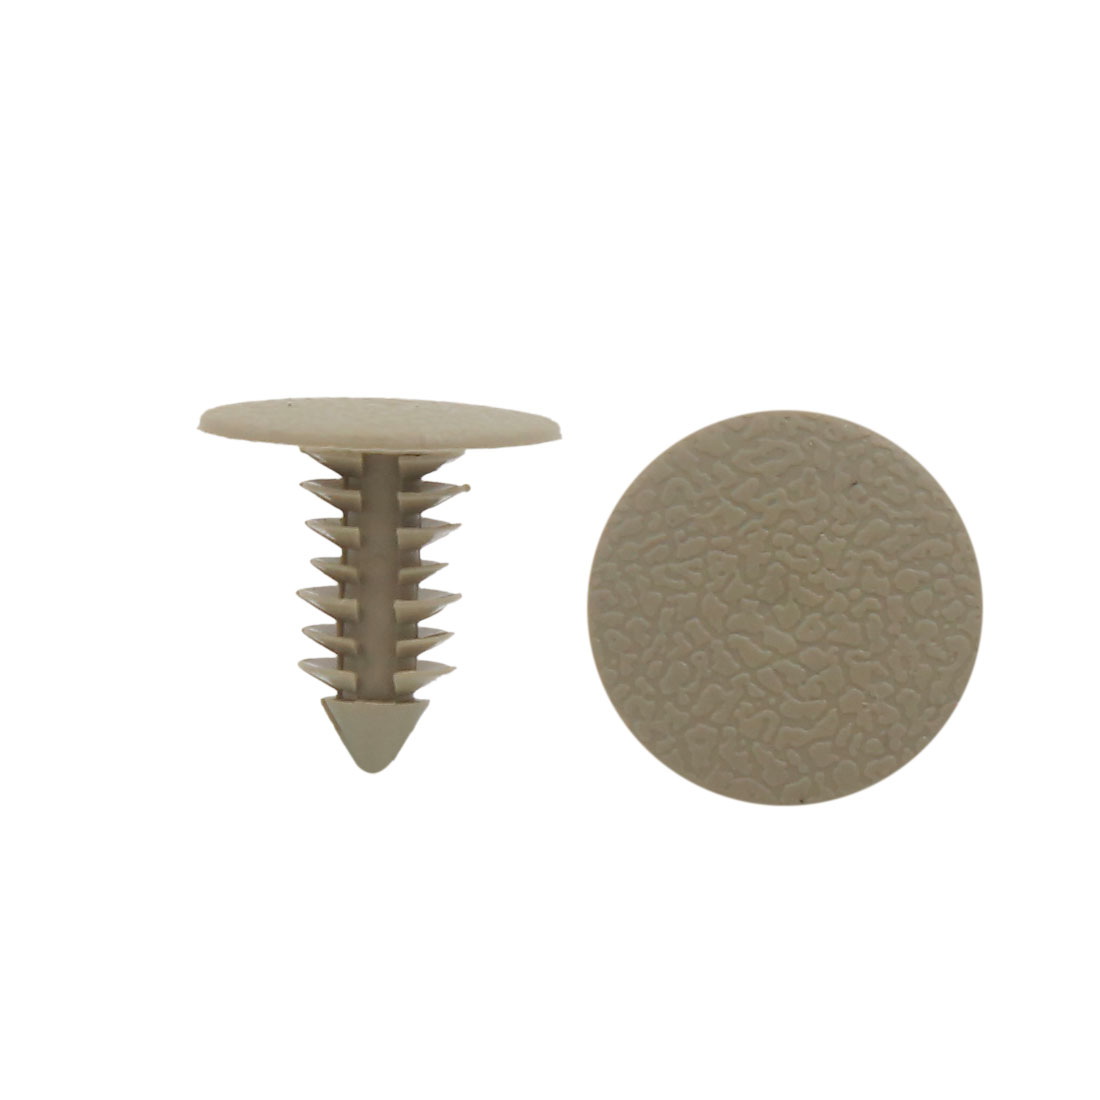 100Pcs Universal Khaki Plastic Push Type Fastener Clip Rivet 9mm for Car